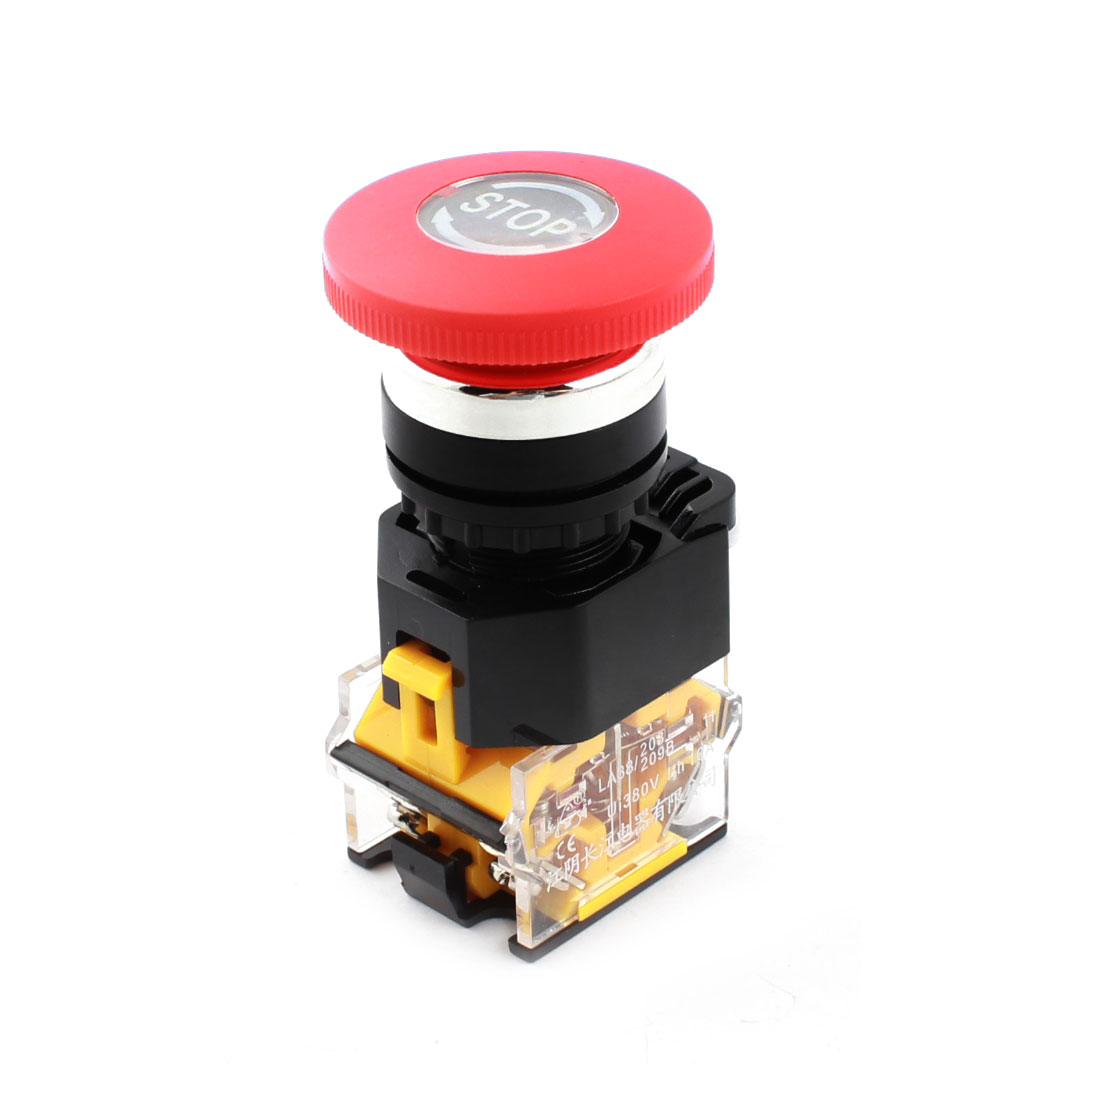 AC380V 10A 22mm Dia Thread Panel Mount DPST 1NO 1NC 4 Screw Terminal Mushroom Push Button Switch